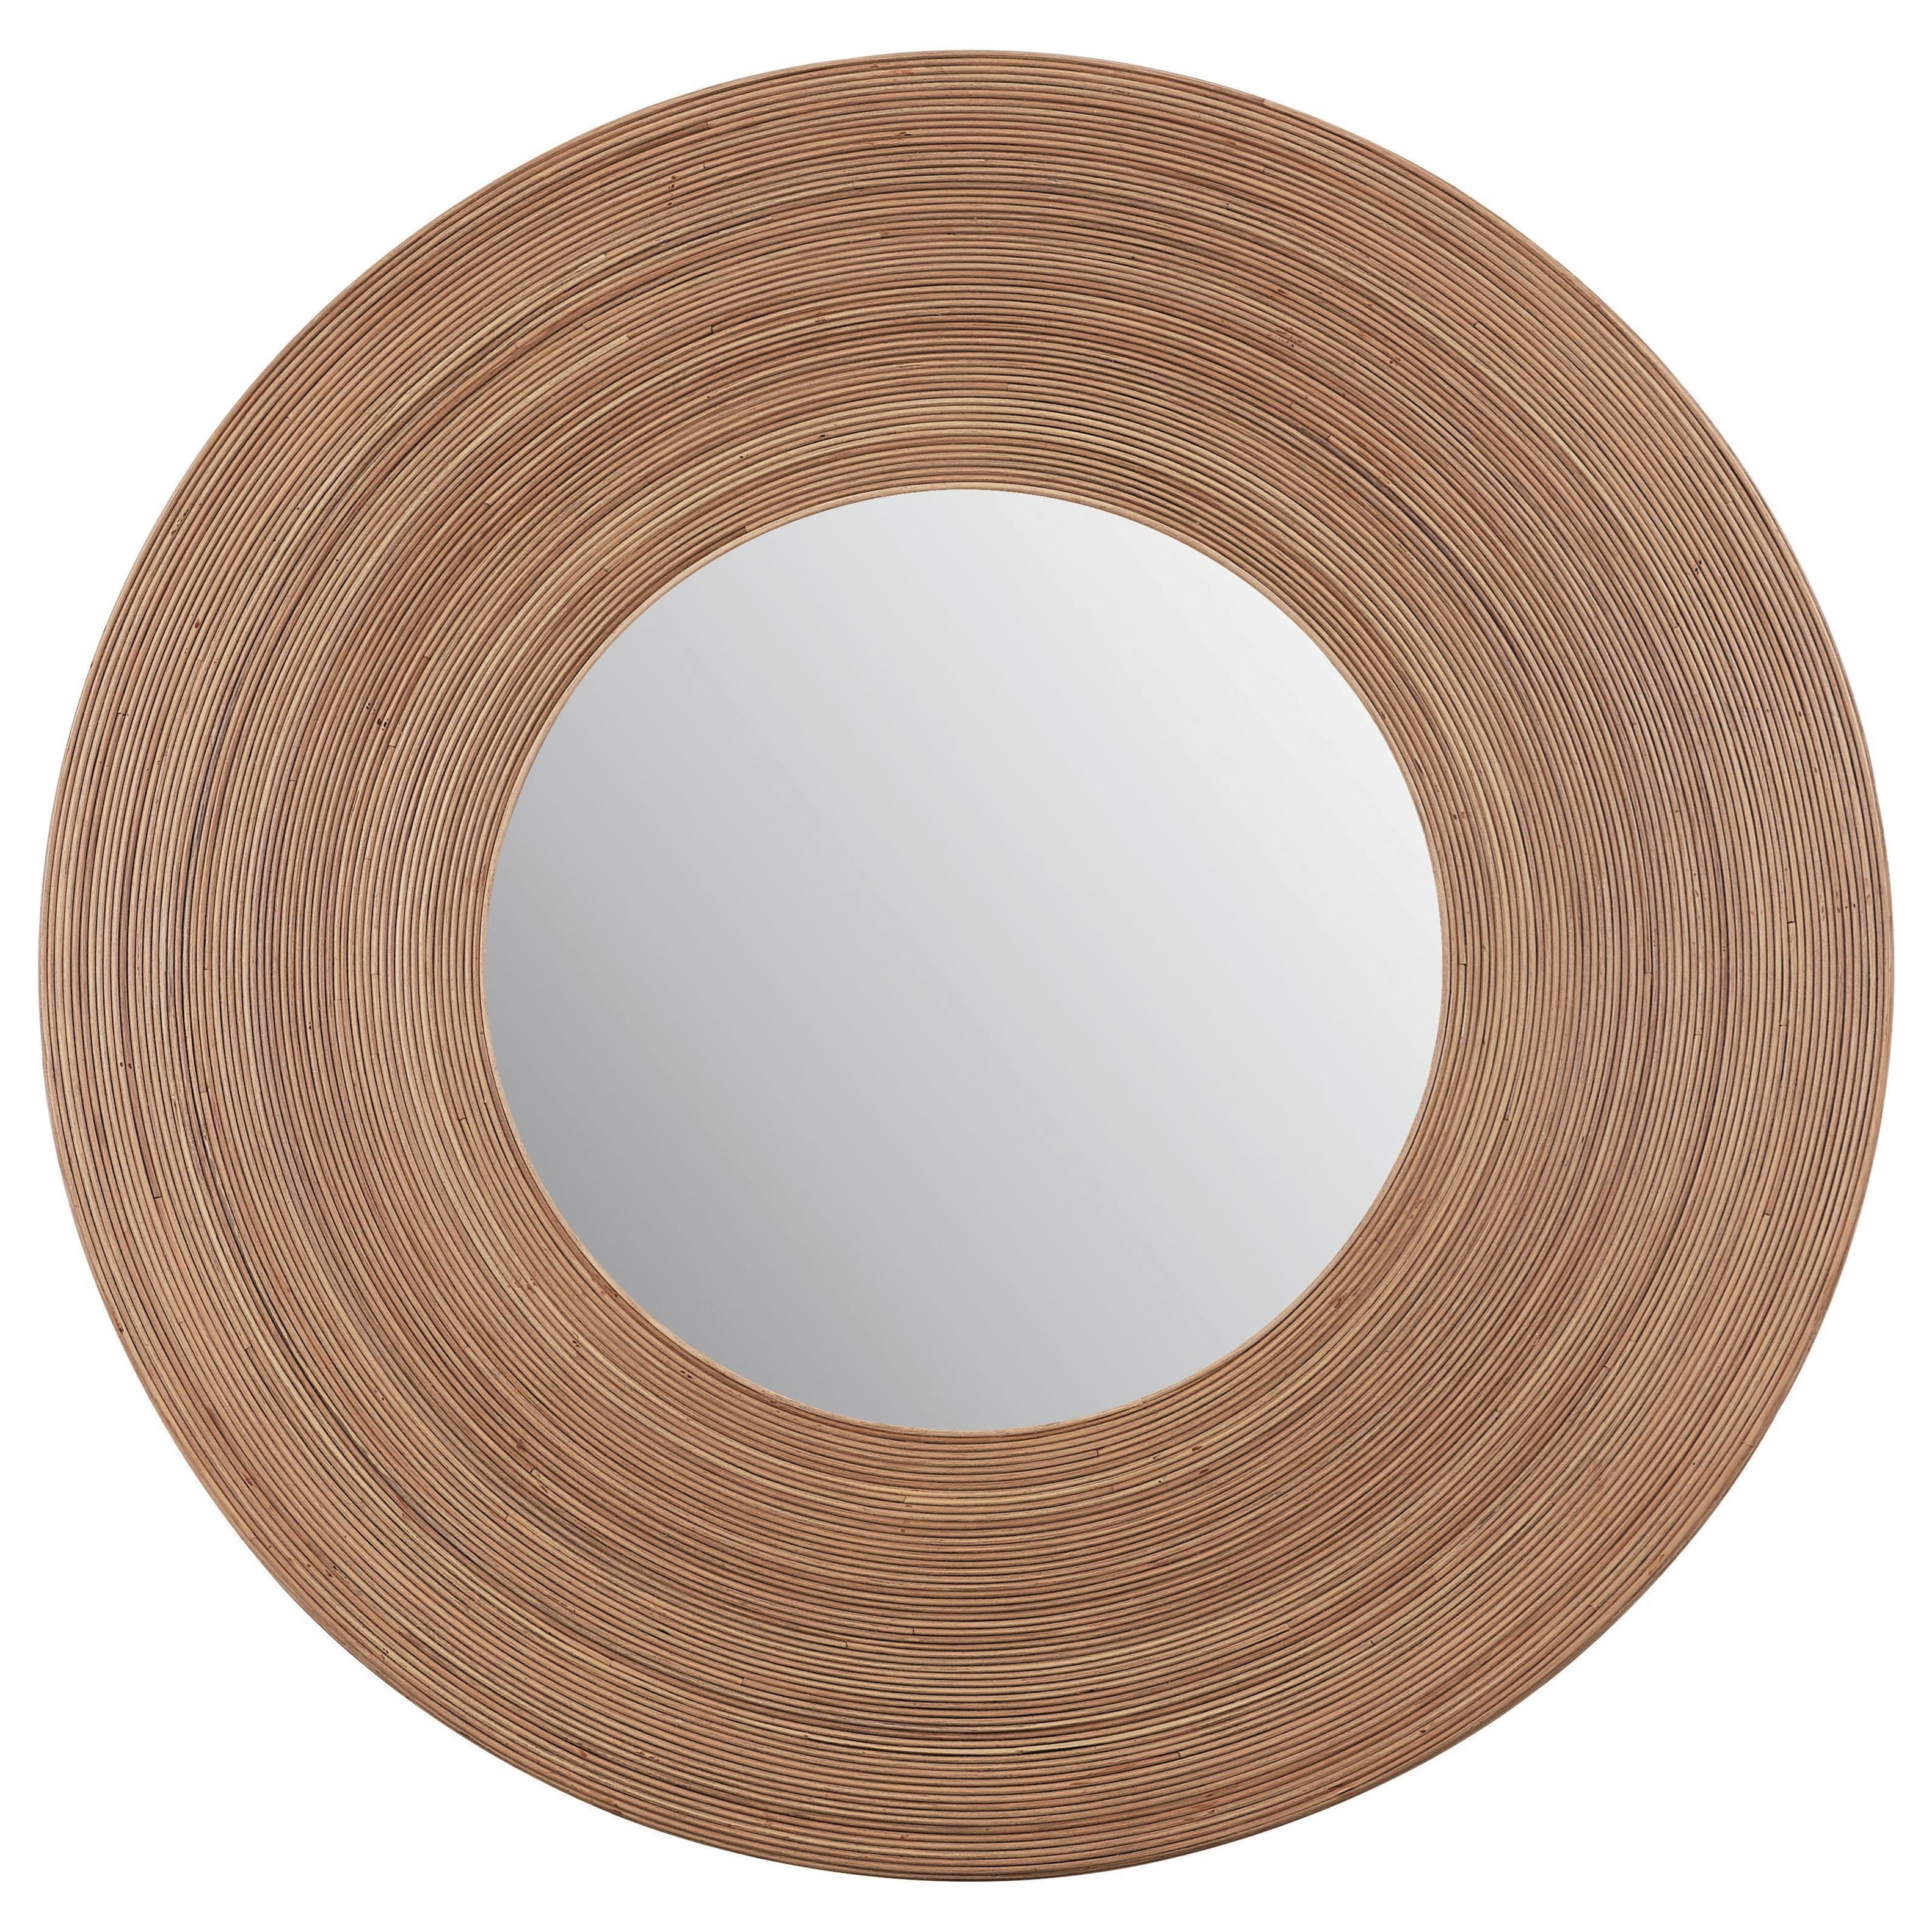 Stamford Round Wall Mirror by Bassett at Bassett of Cool Springs